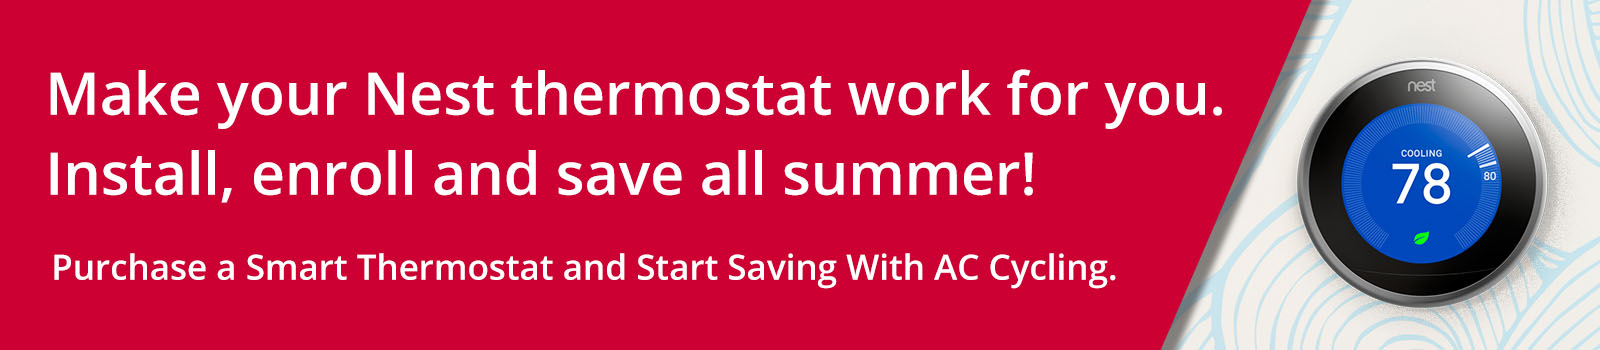 Puchase a Smart Thermostat and Start Saving With AC Cycling.